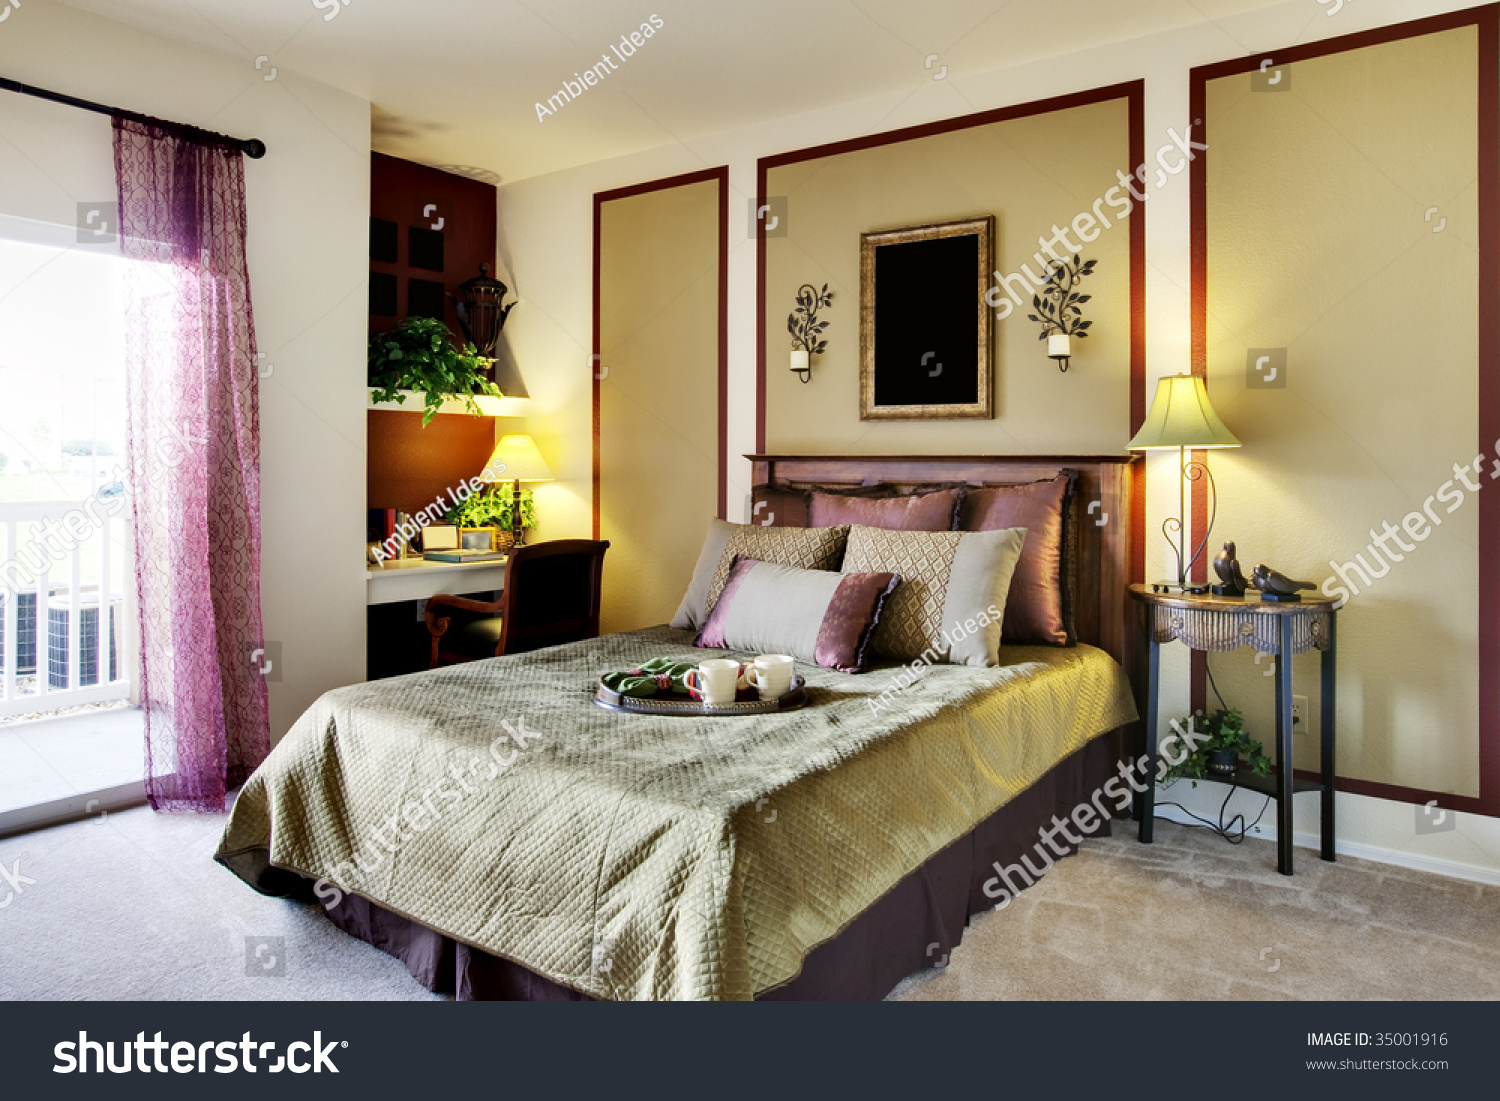 Well decorated apartment bedroom stock photo 35001916 for Well decorated bedroom